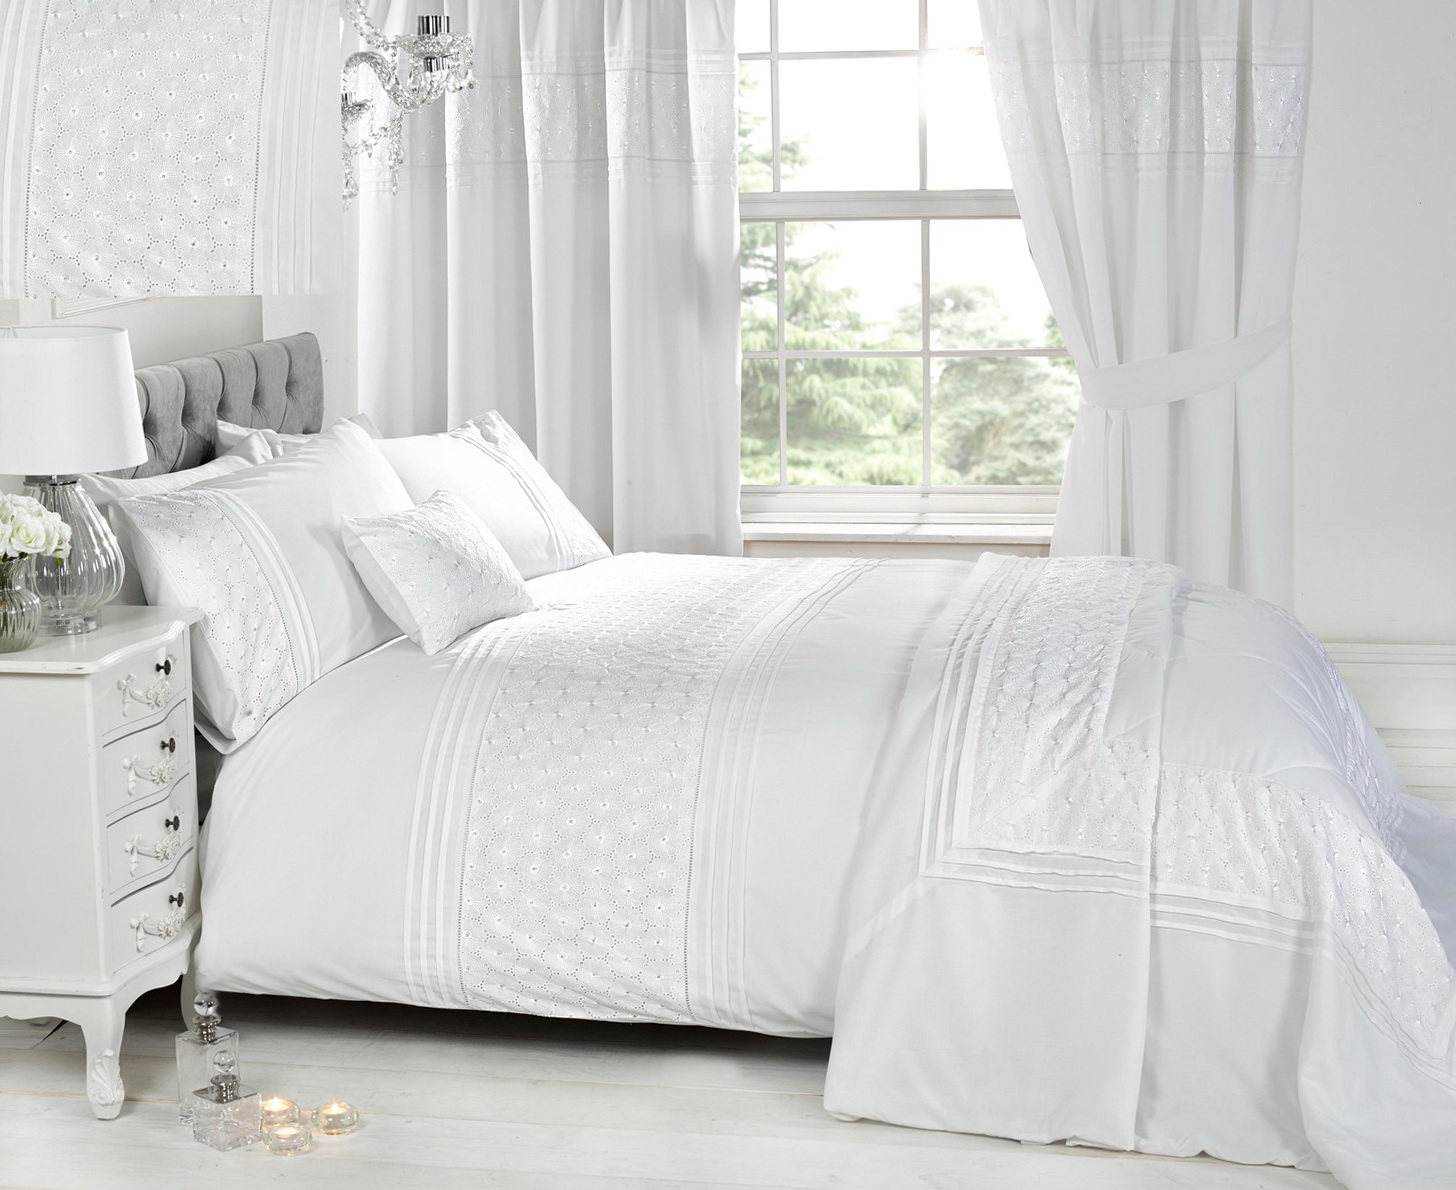 Bedding Sets With Matching Curtains Uk Home Design Ideas